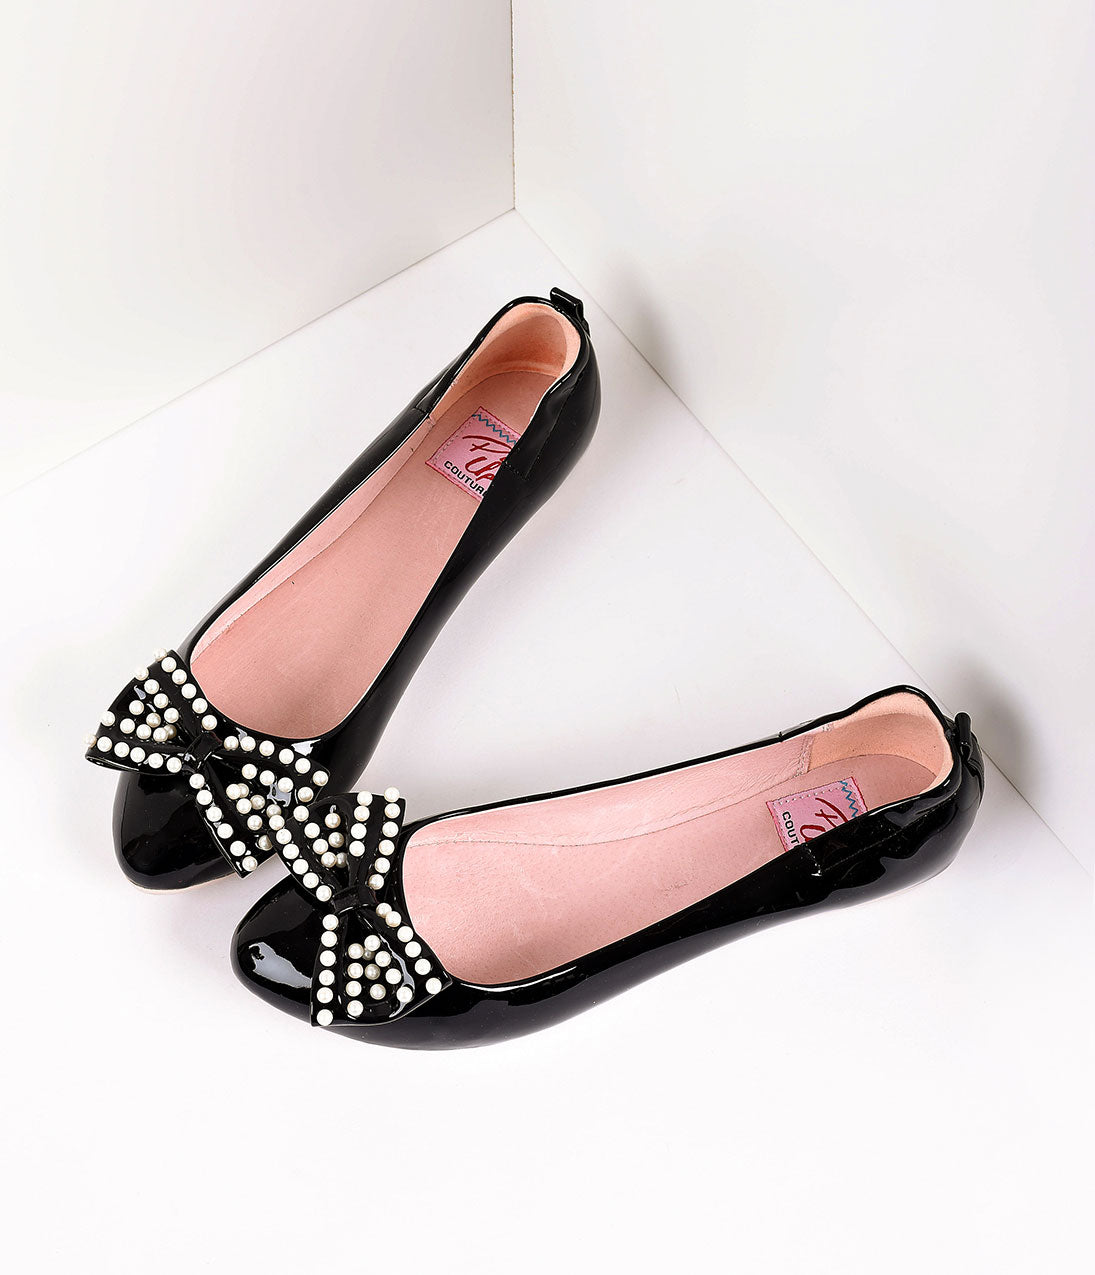 Retro Vintage Flats and Low Heel Shoes Retro Style Black Patent Leather Pearl Bow Ballet Flats $48.00 AT vintagedancer.com